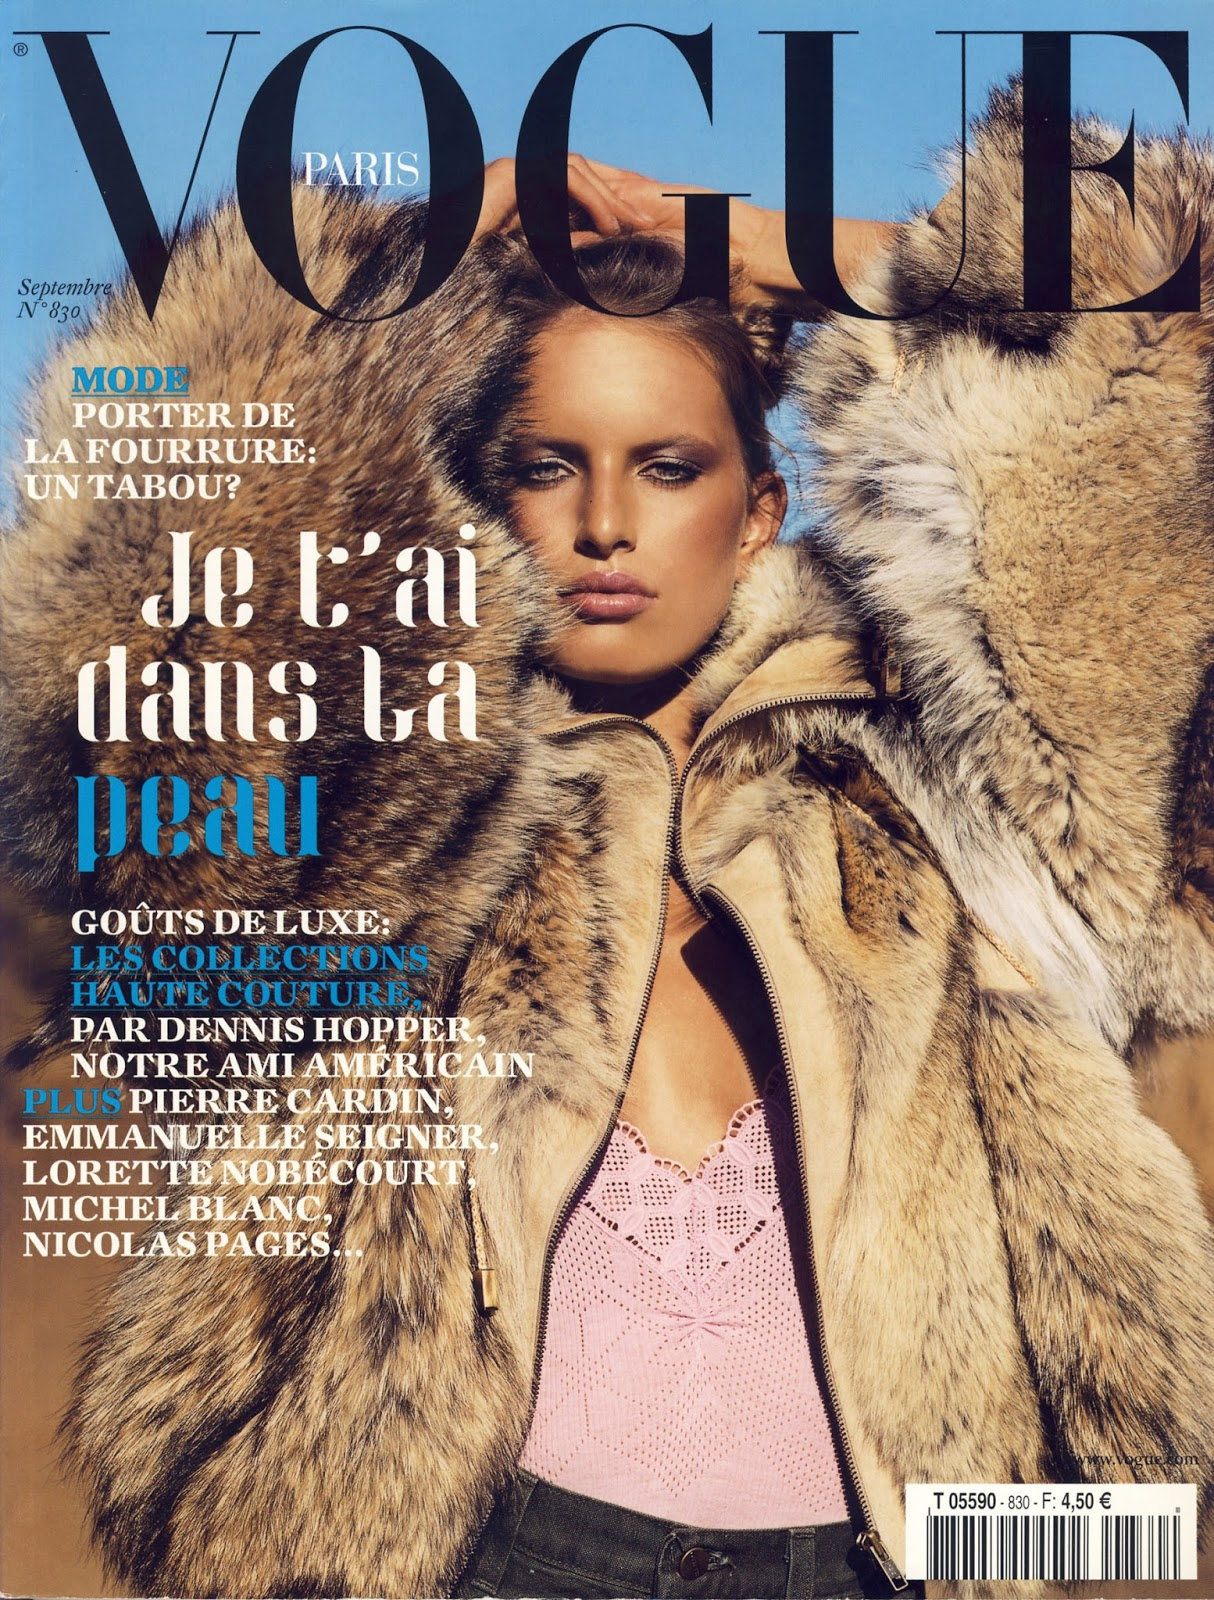 Vogue S Covers Gigi Hadid: Vogue's Covers: Karolina Kurkova